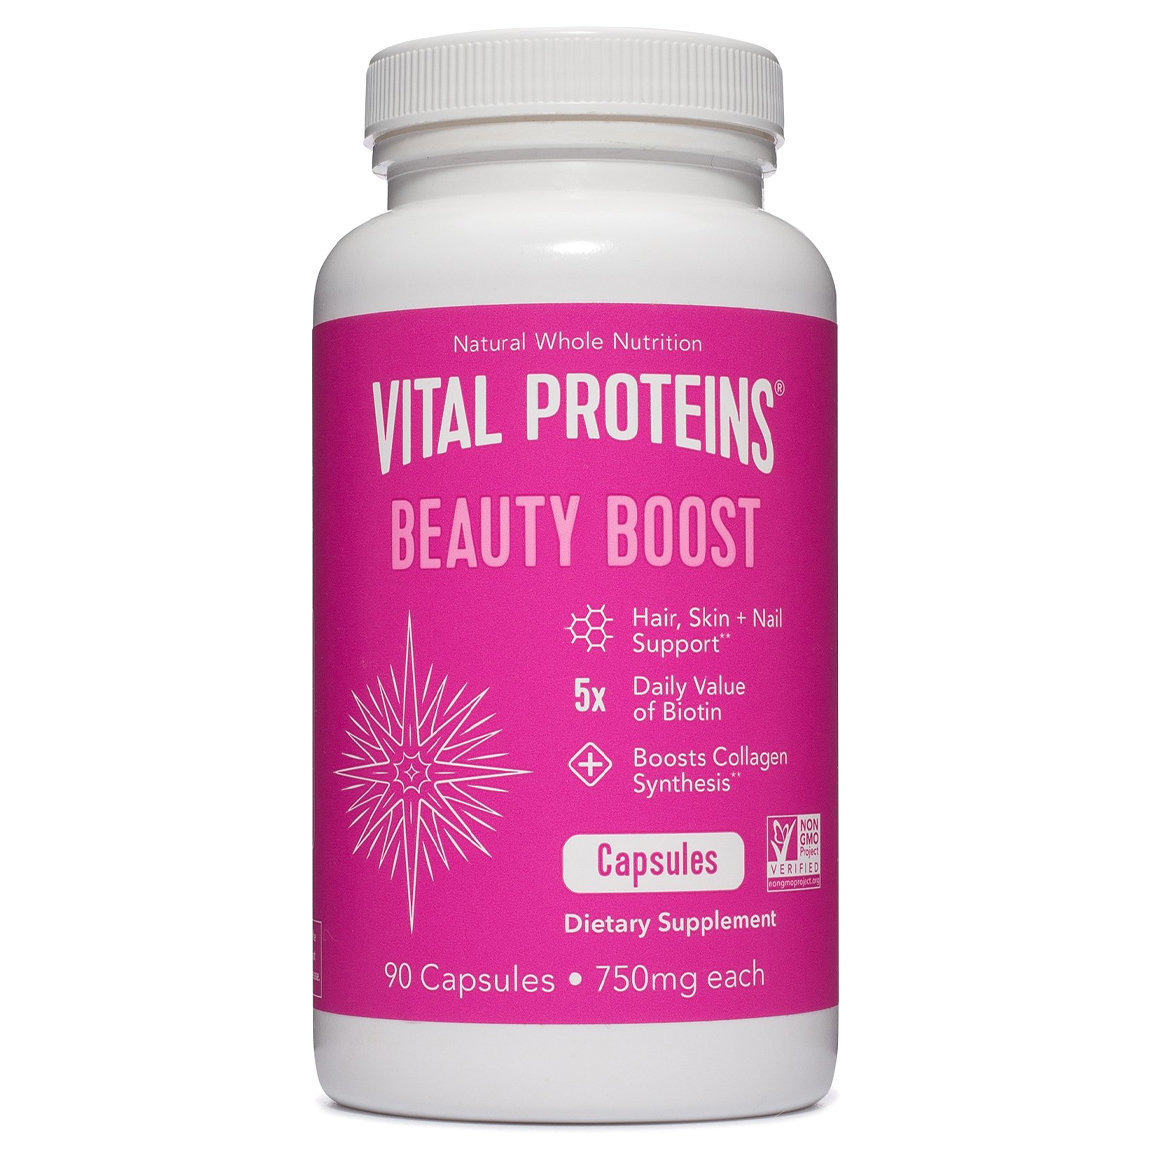 Vital Proteins Beauty Boost Capsules product swatch.